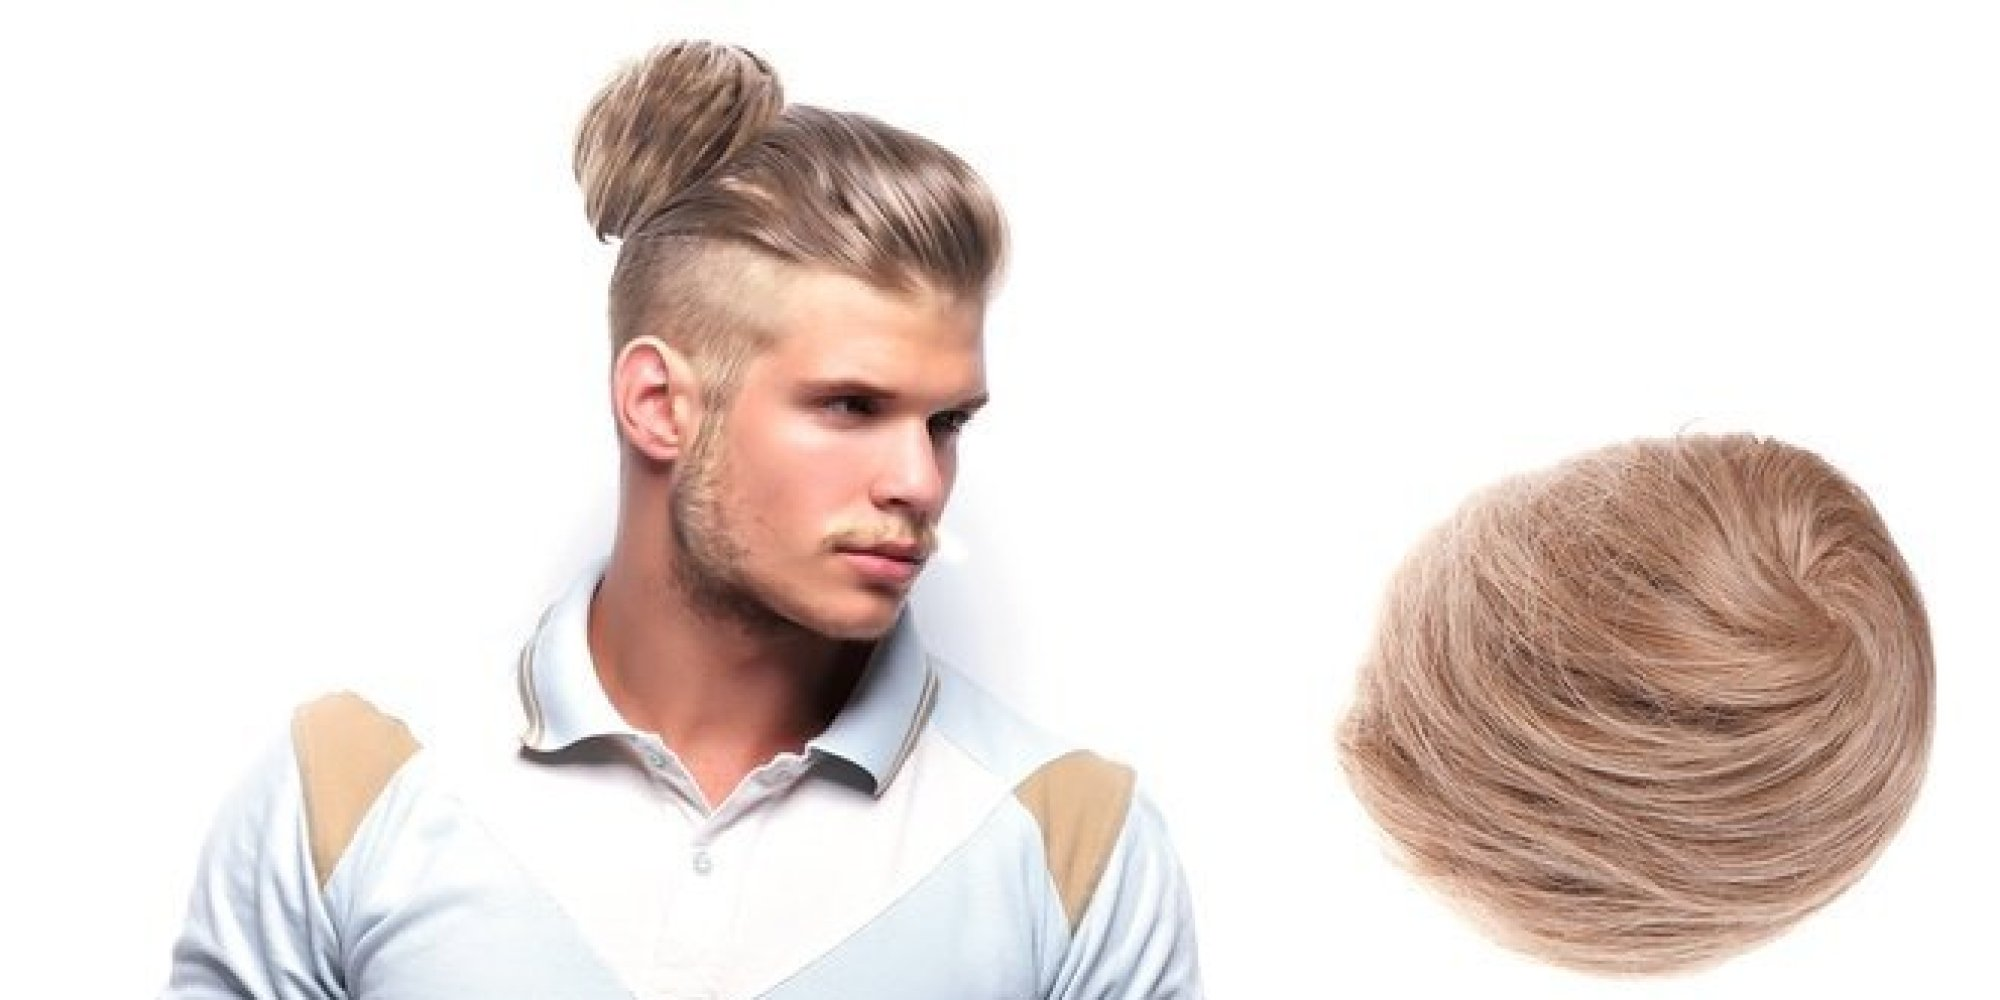 Clip On Man Buns Are The Solution For Men Who Fear Their